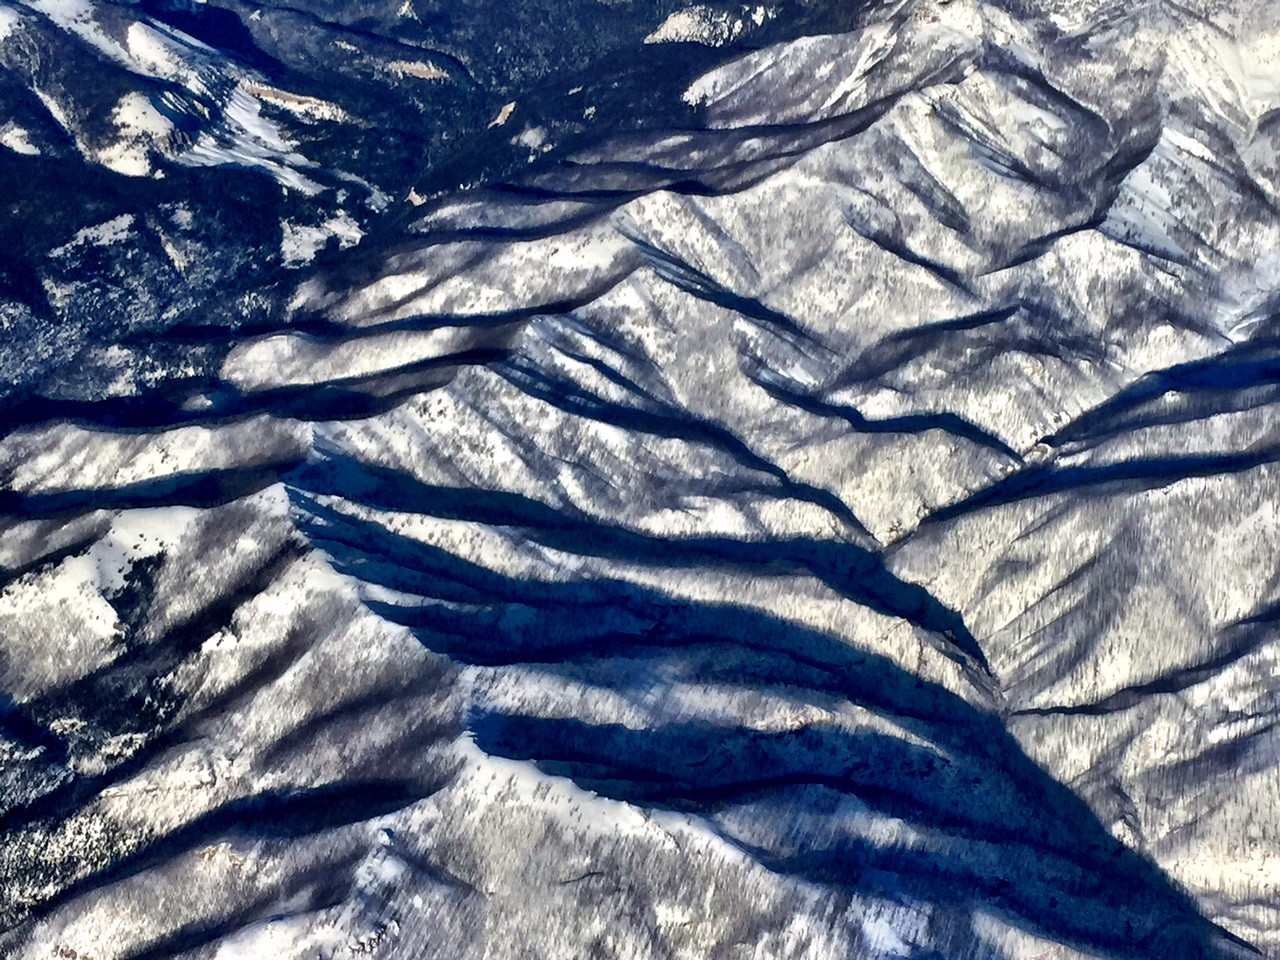 As we flew into Bozeman, we were glued to the windows viewing the patterns in the snow capped mountains.  The shadows emphasized the peaks and valleys and presented us with a dramatic welcome to Montana  and YNP.